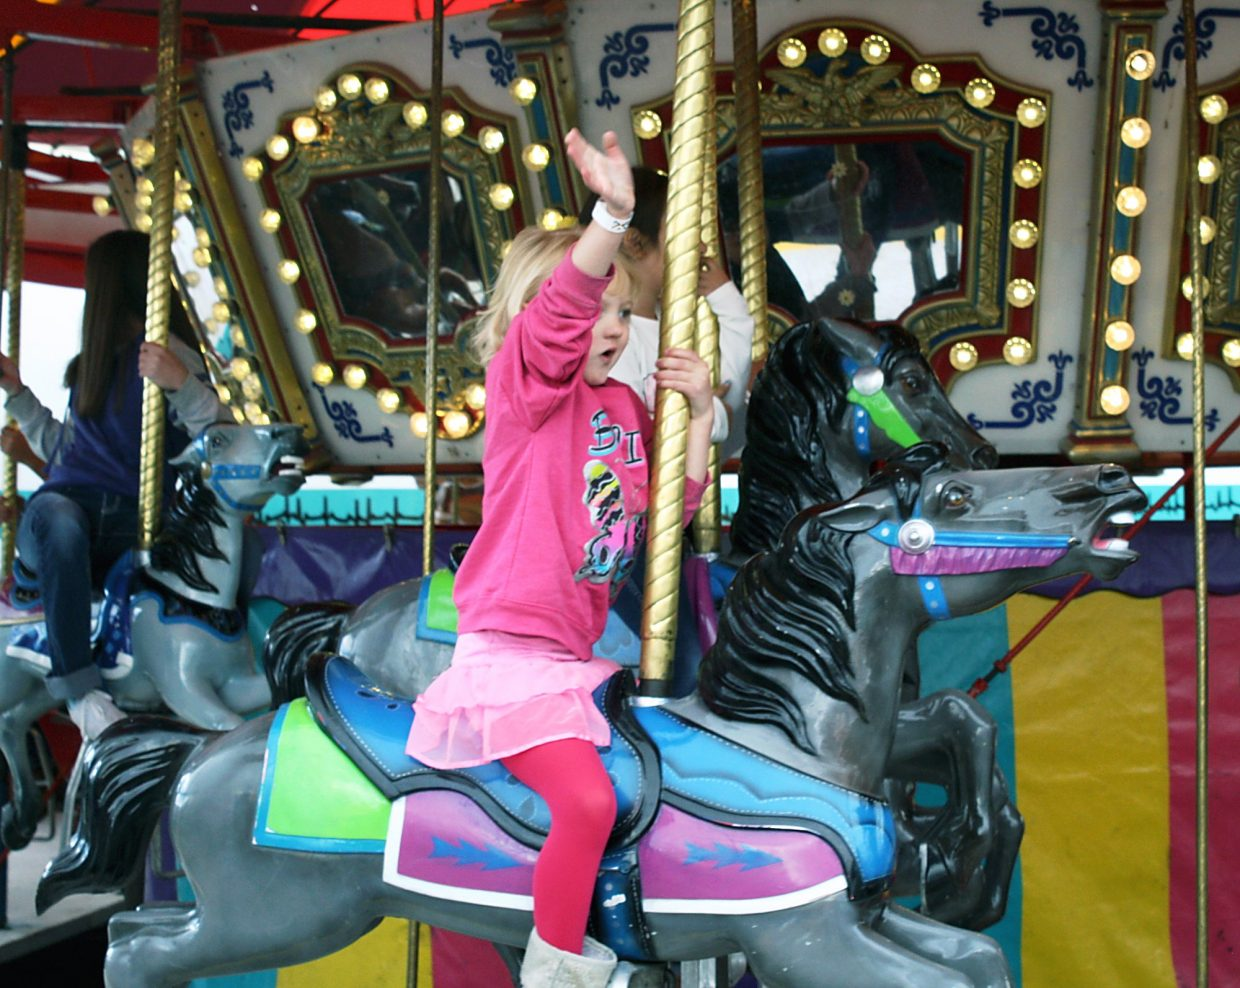 Abigail Morrow waves to her parents during a ride on the merry-go-round at the 19th annual Rifle Rendezvous.